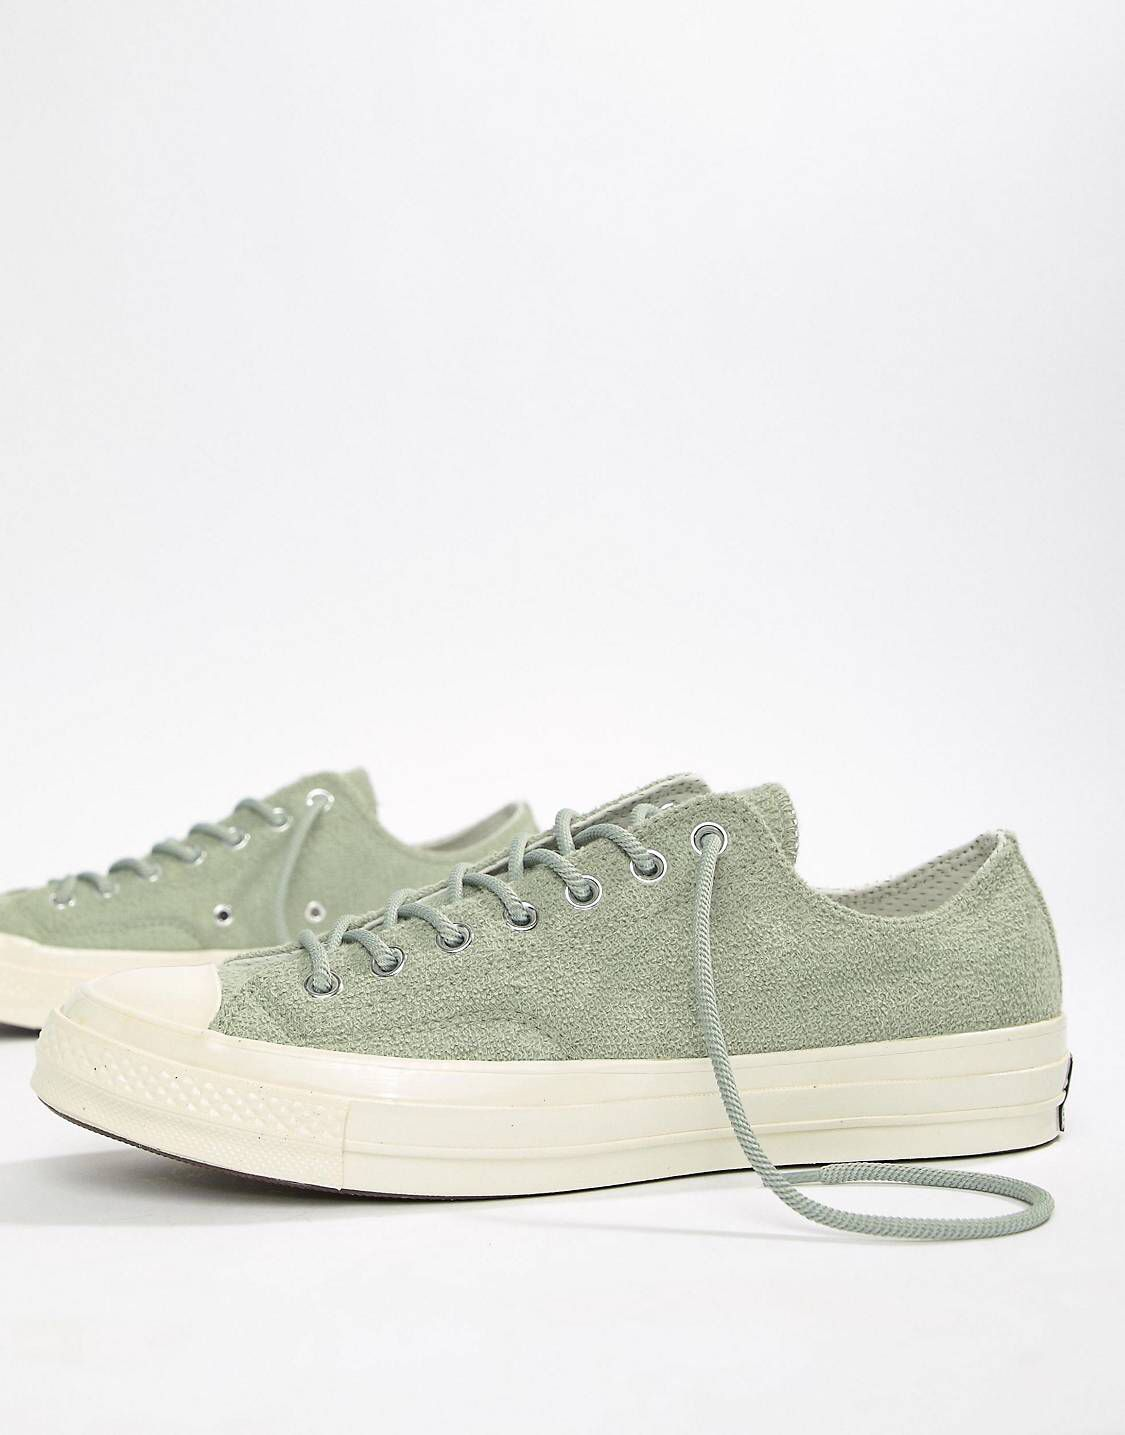 Converse Chuck Taylor All Star '70 Ox Plimsolls In Green